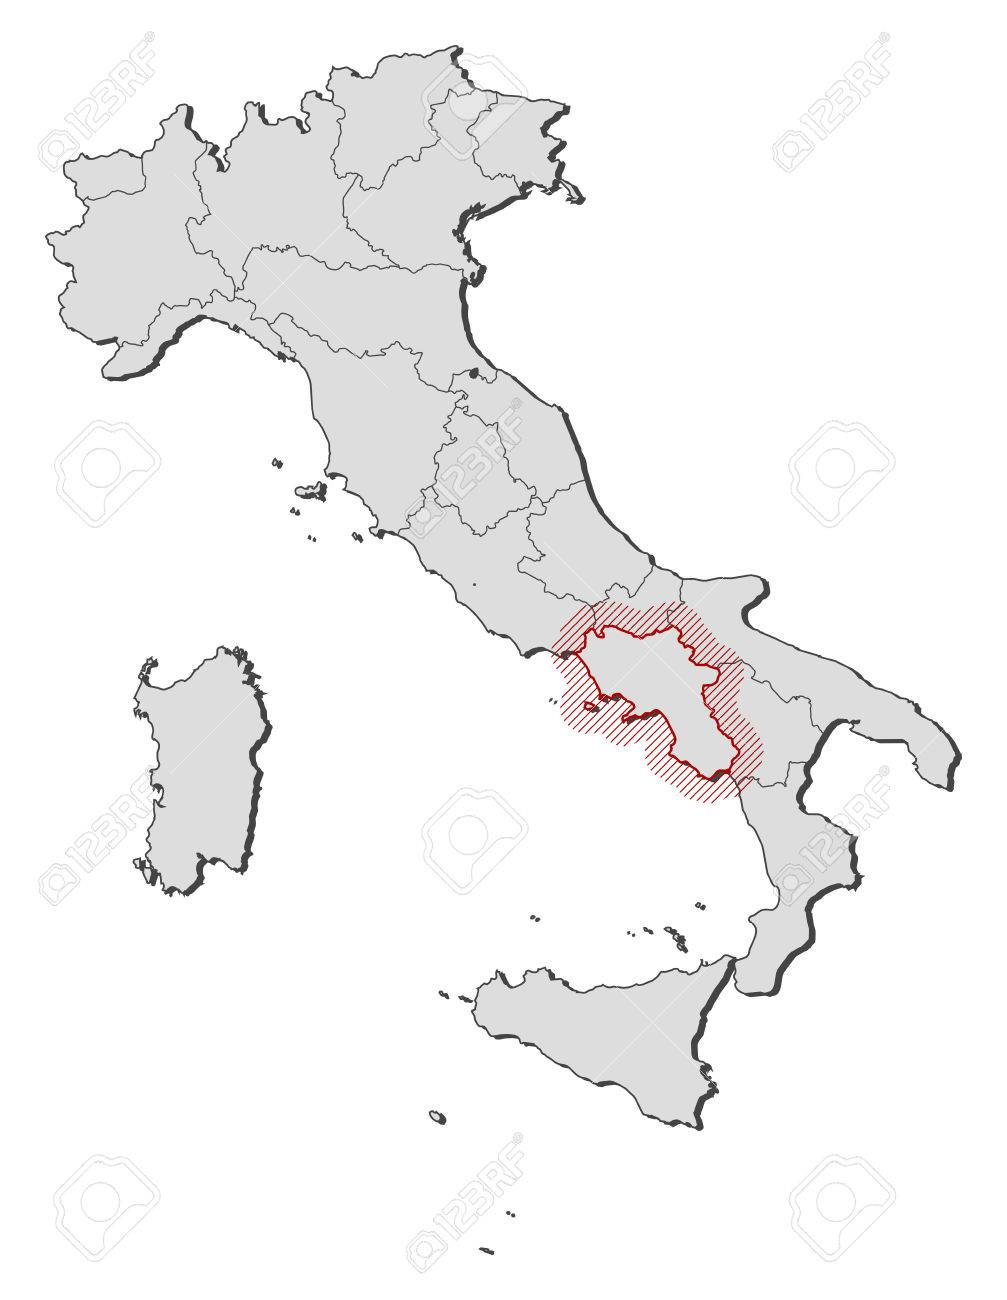 Map Of Italy With The Provinces Campania Is Highlighted By A